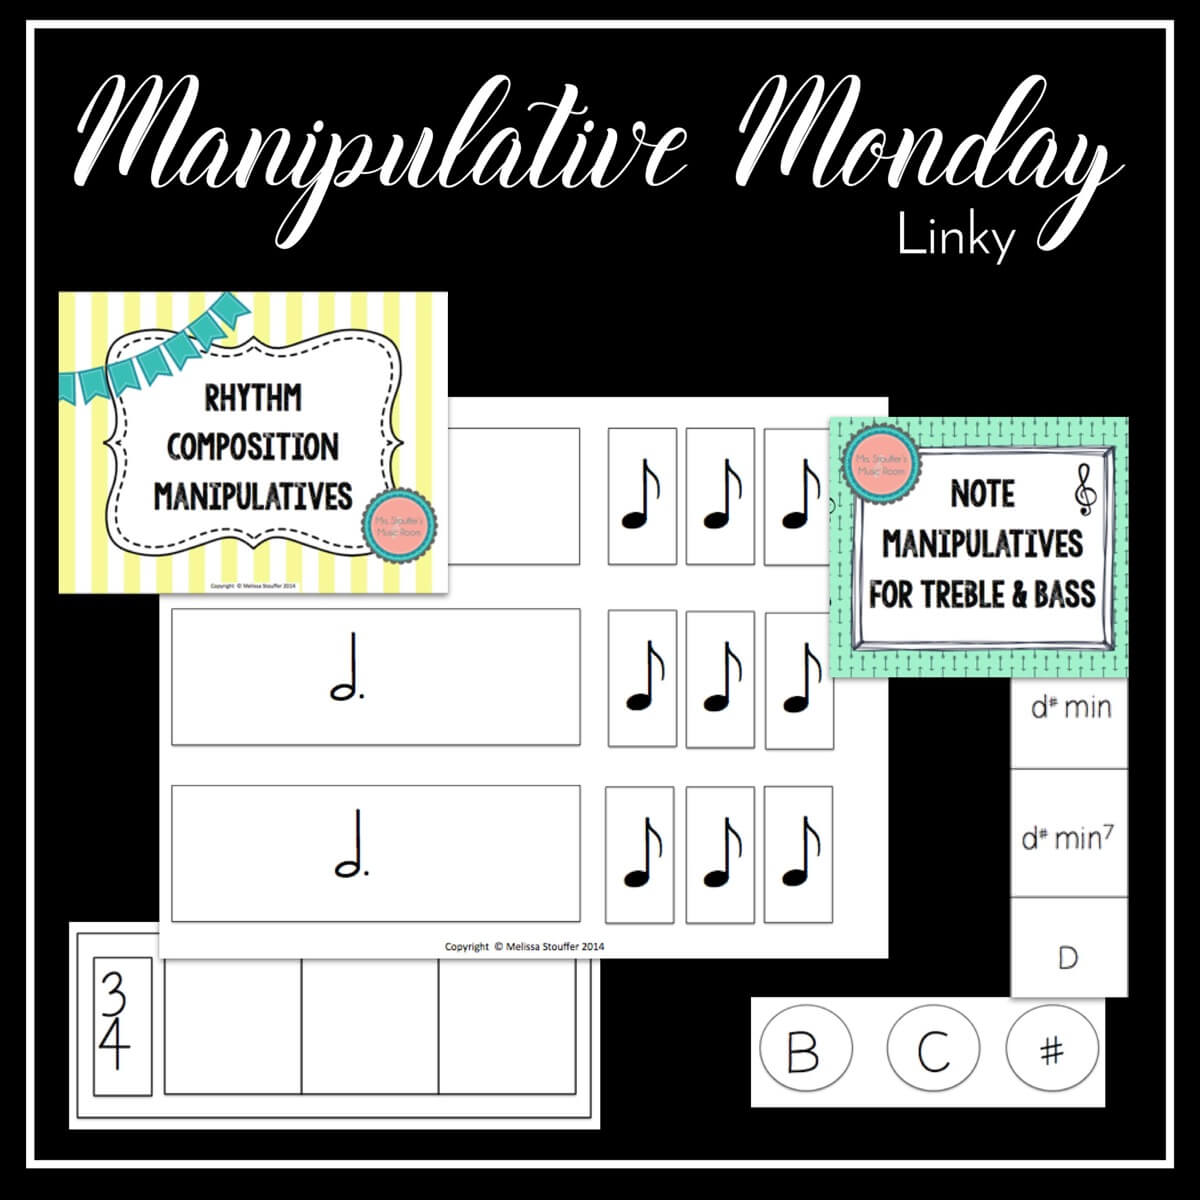 Manipulative Monday Linky